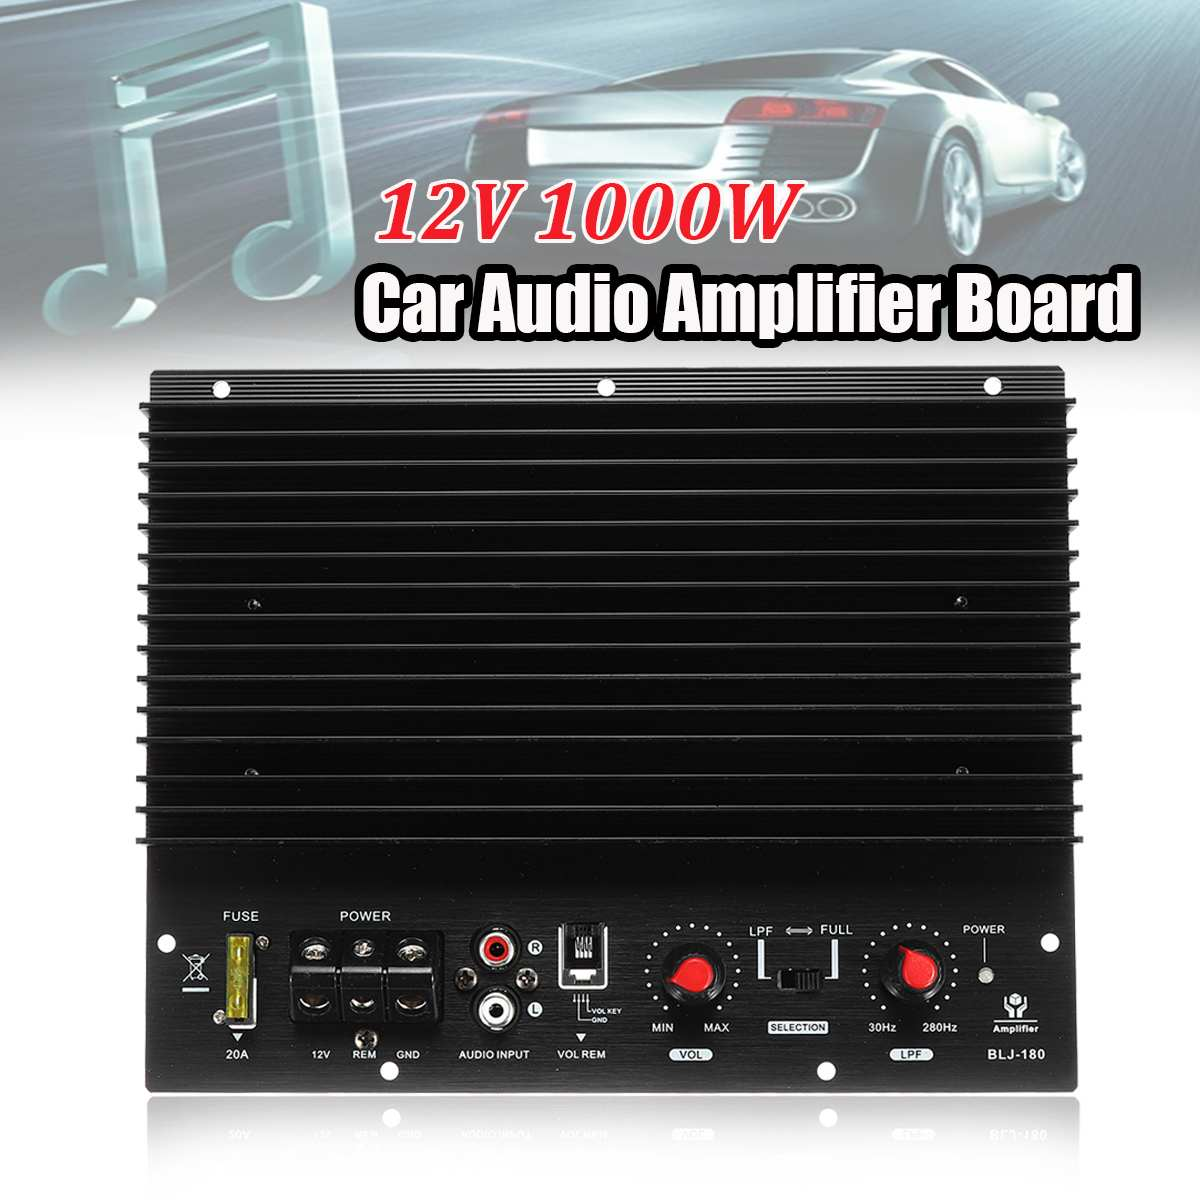 12V 1000W Car Sound Amplifier Subwoofer Amplifier Board High Power Powerful Bass Car Player Amplificador